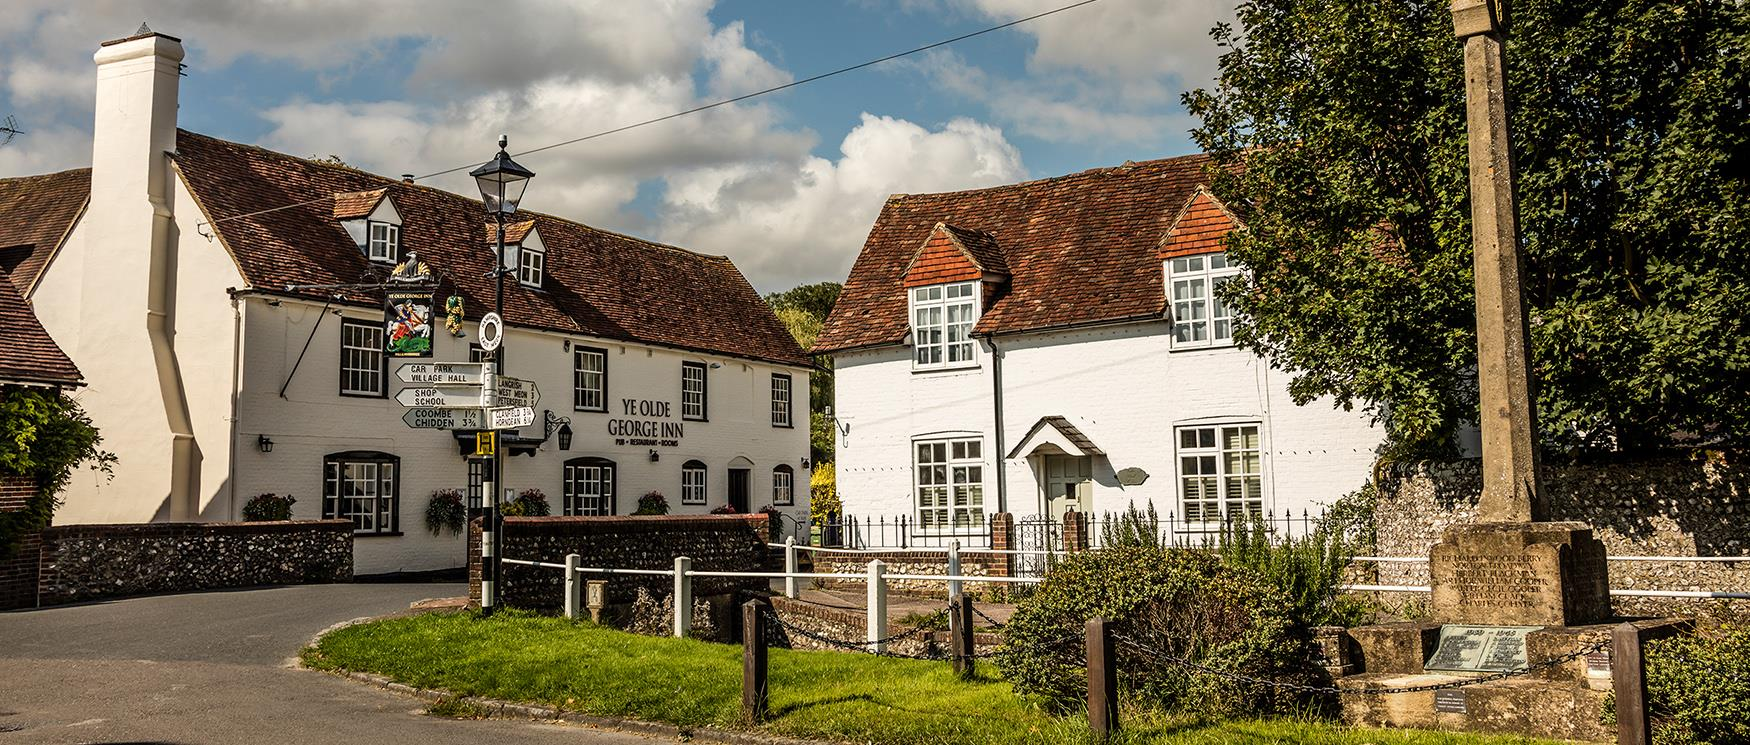 Pubs in the South Downs